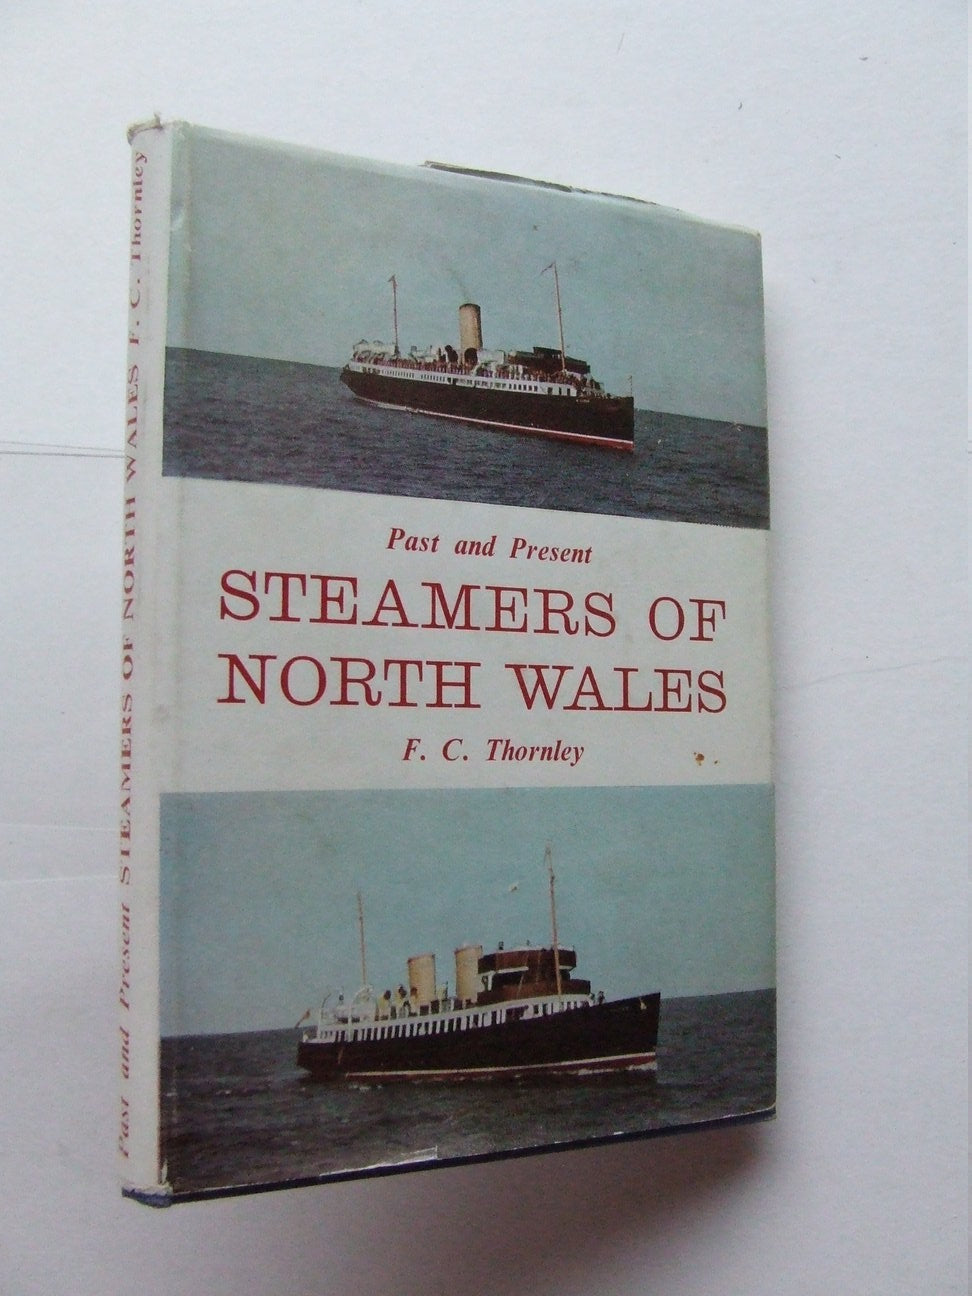 Past and Present steamers of North Wales